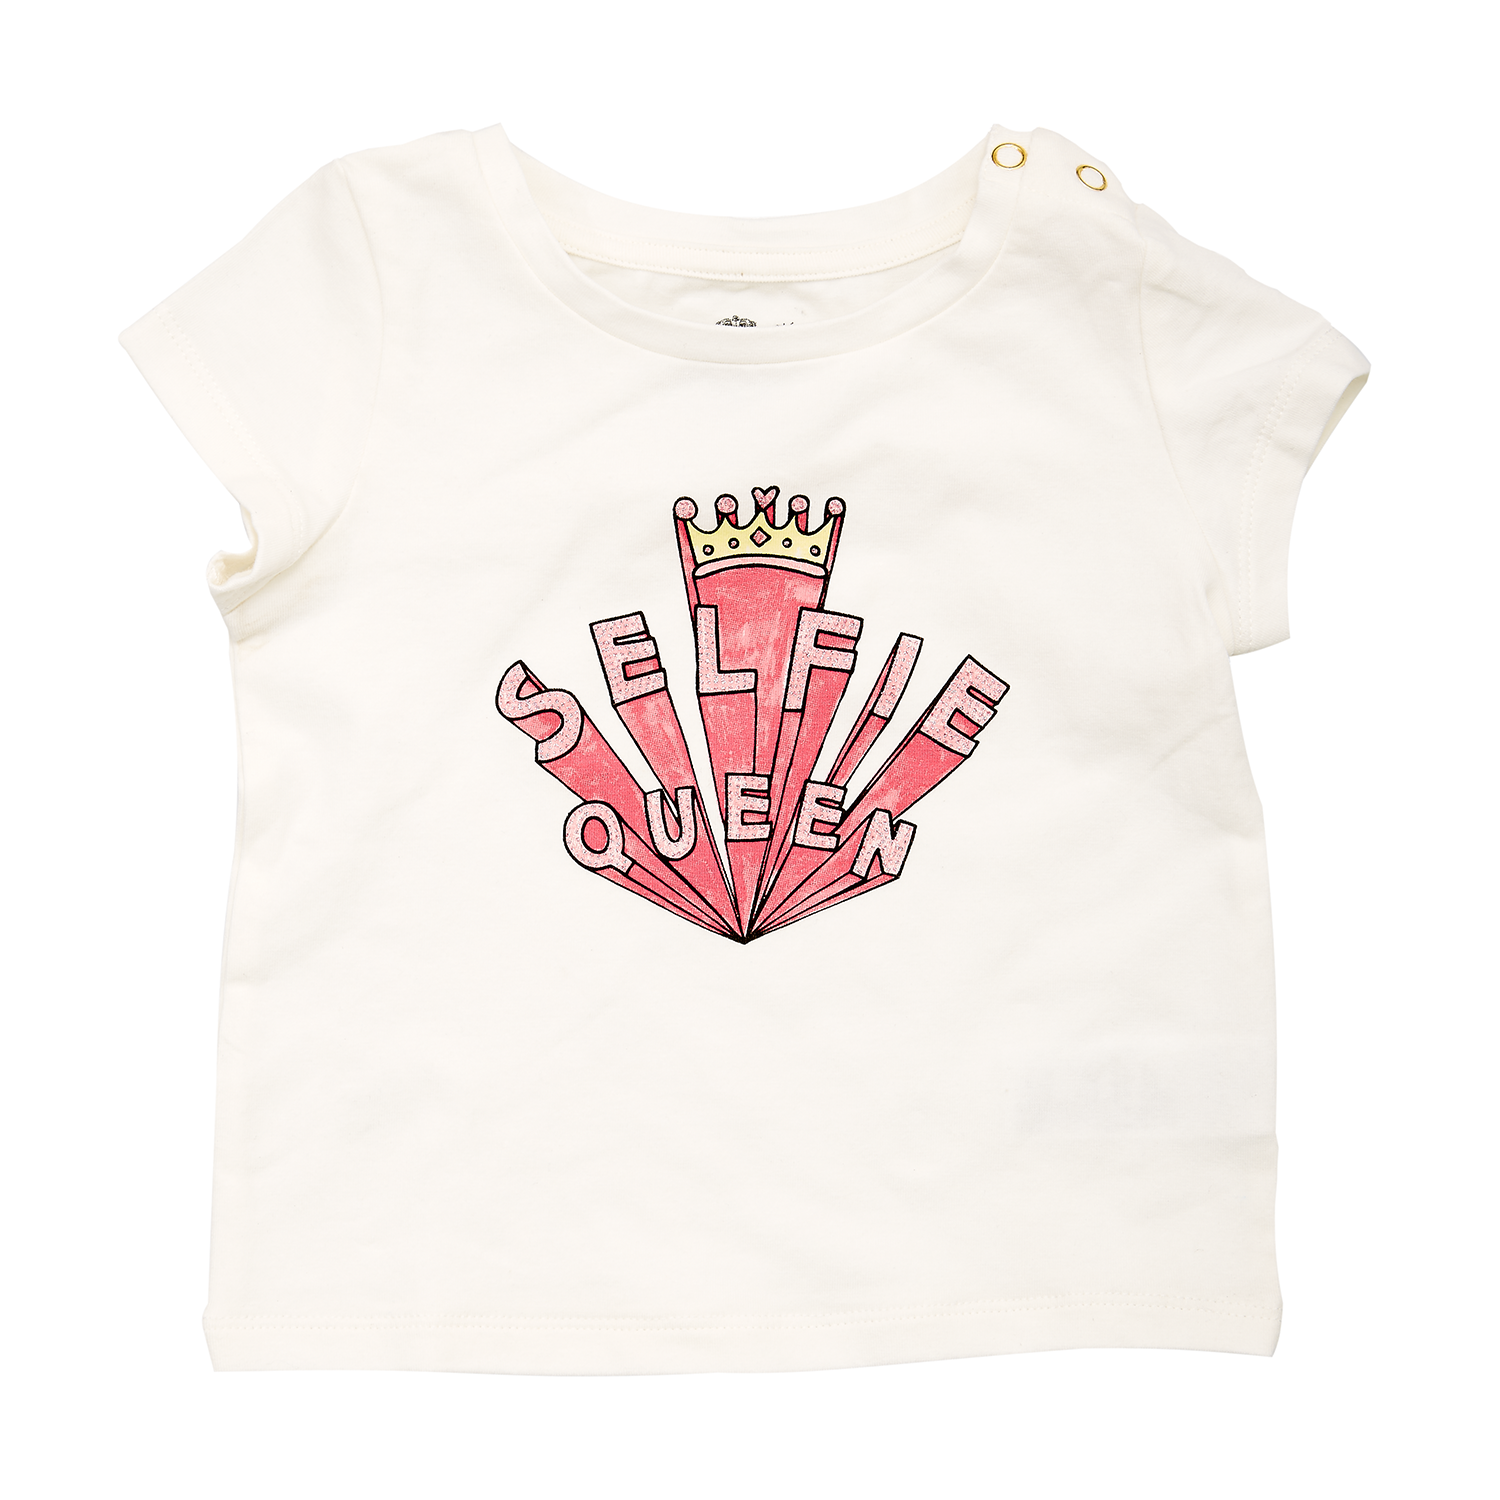 JUICY COUTURE KIDS - Βρεφική μπλούζα JUICY COUTURE λευκή